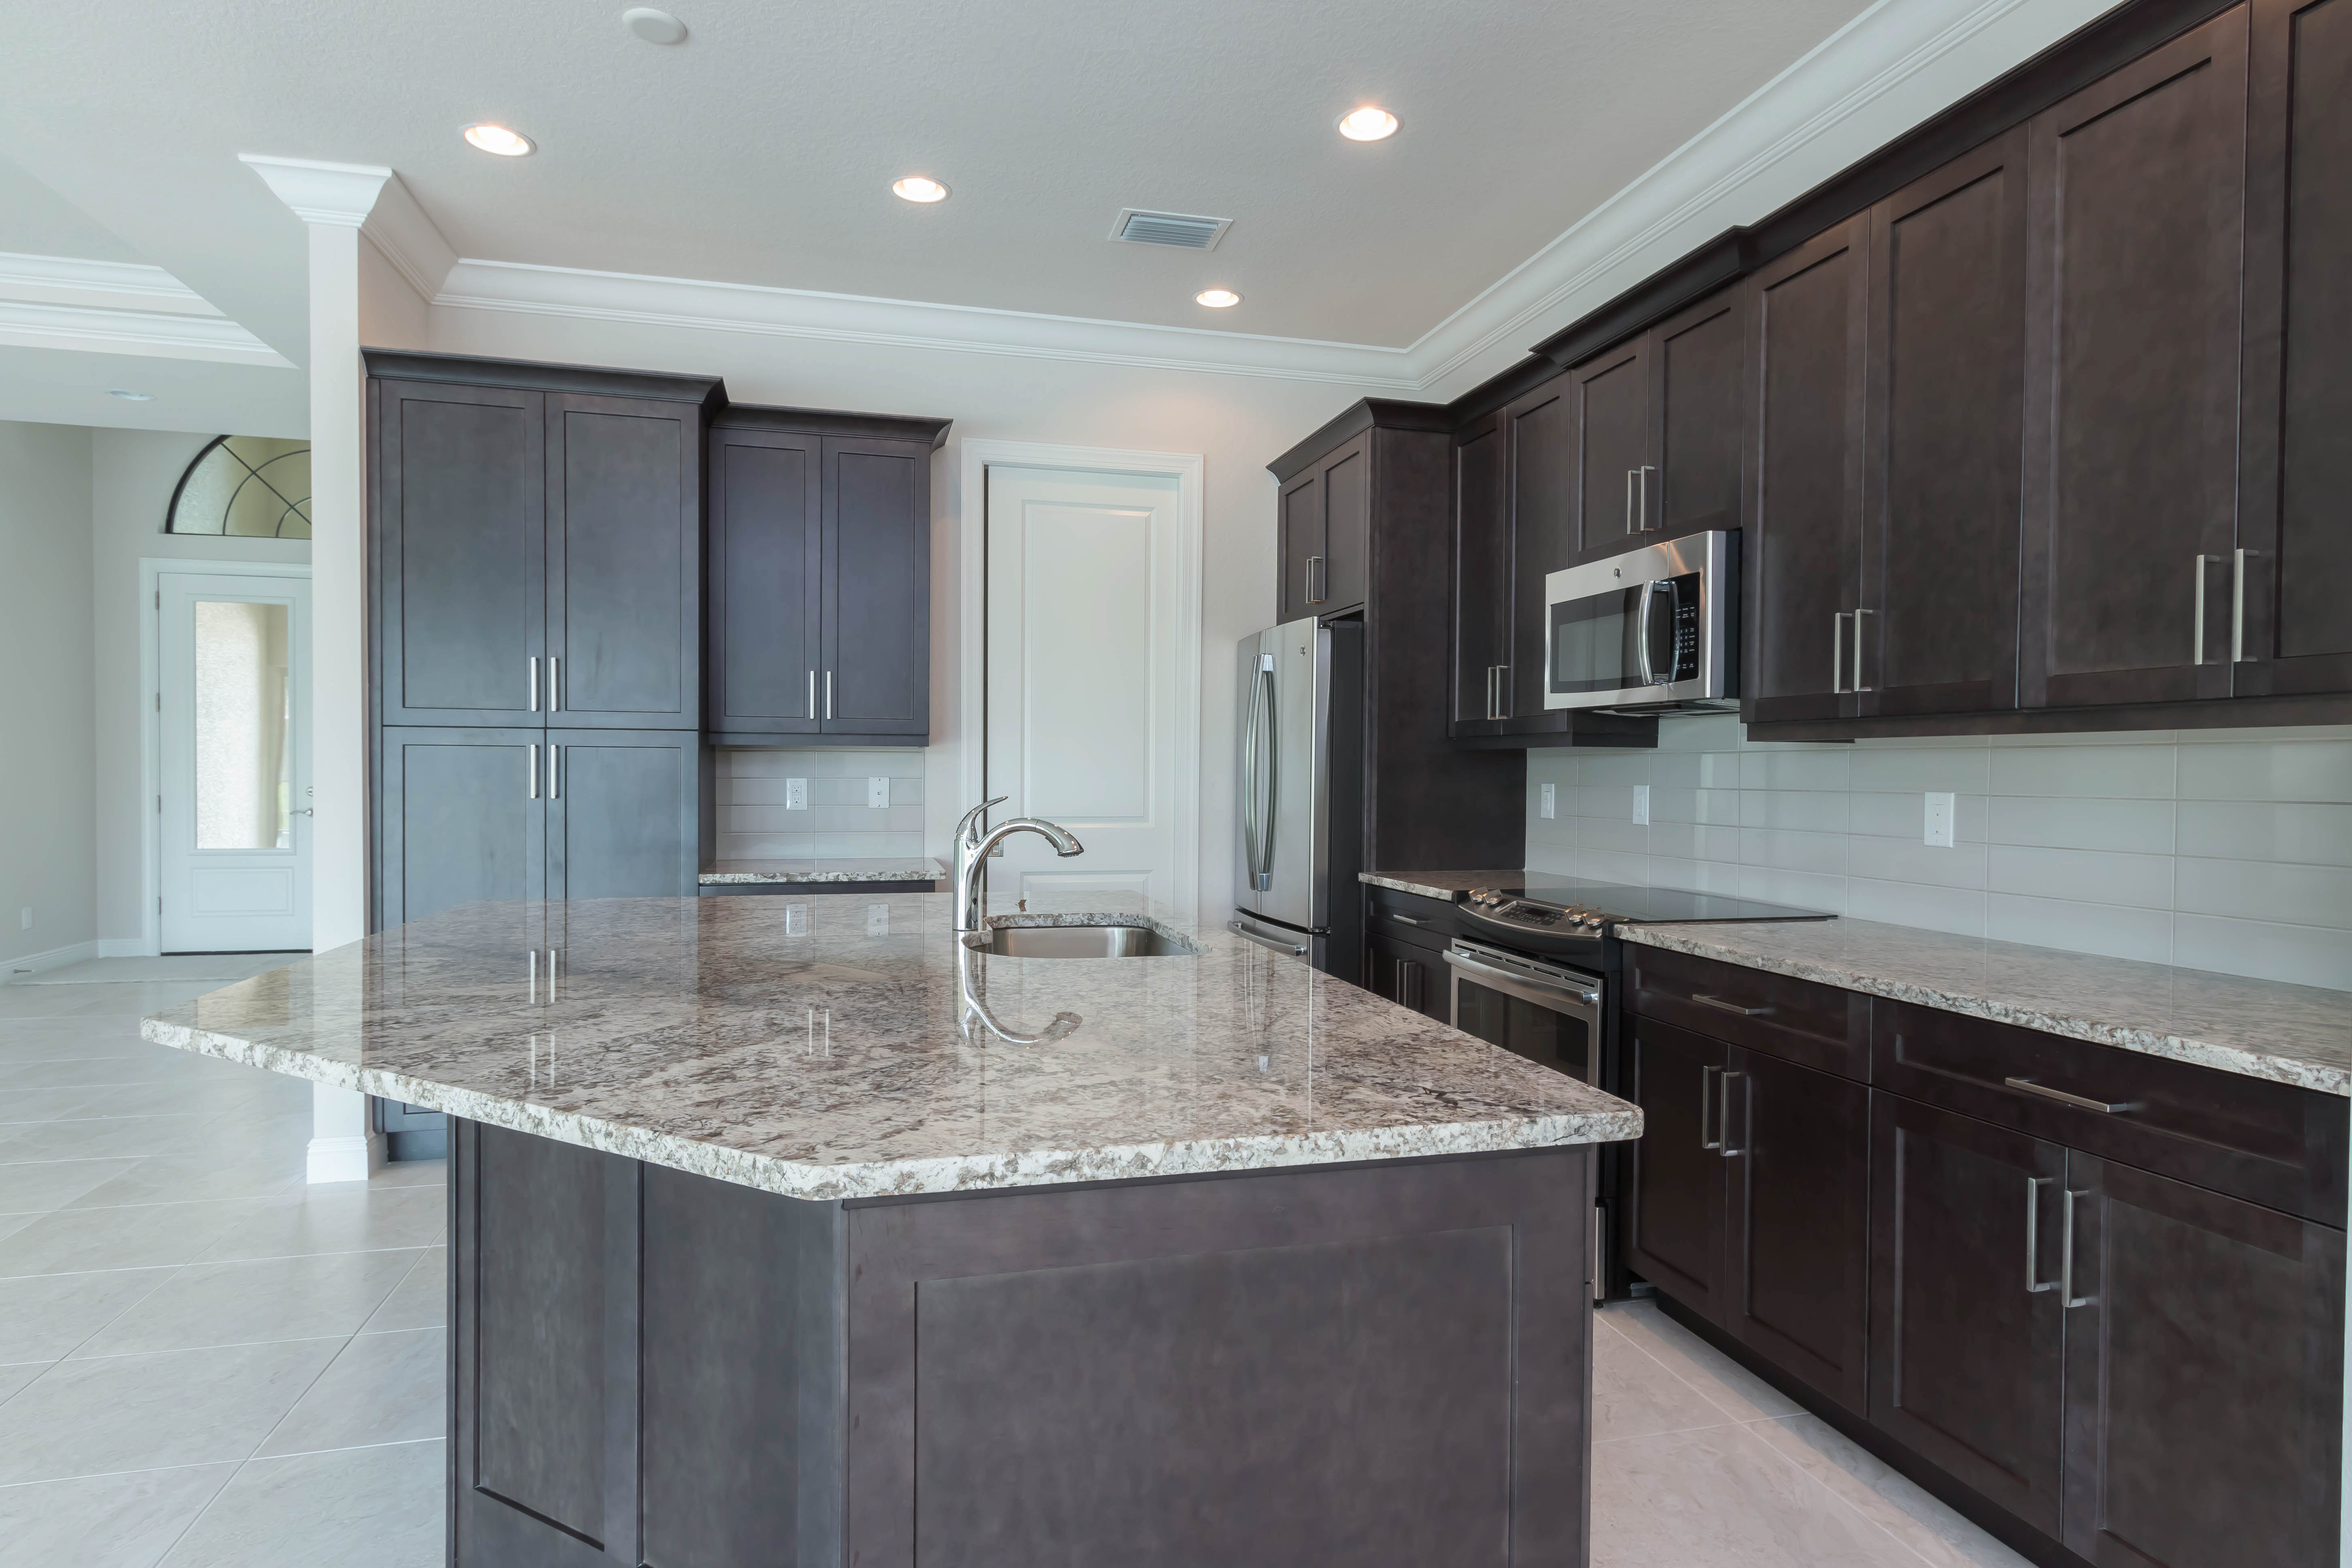 Serrano Cabinet Genies Kitchen And Bathroom Remodeling Cape Coral Fl